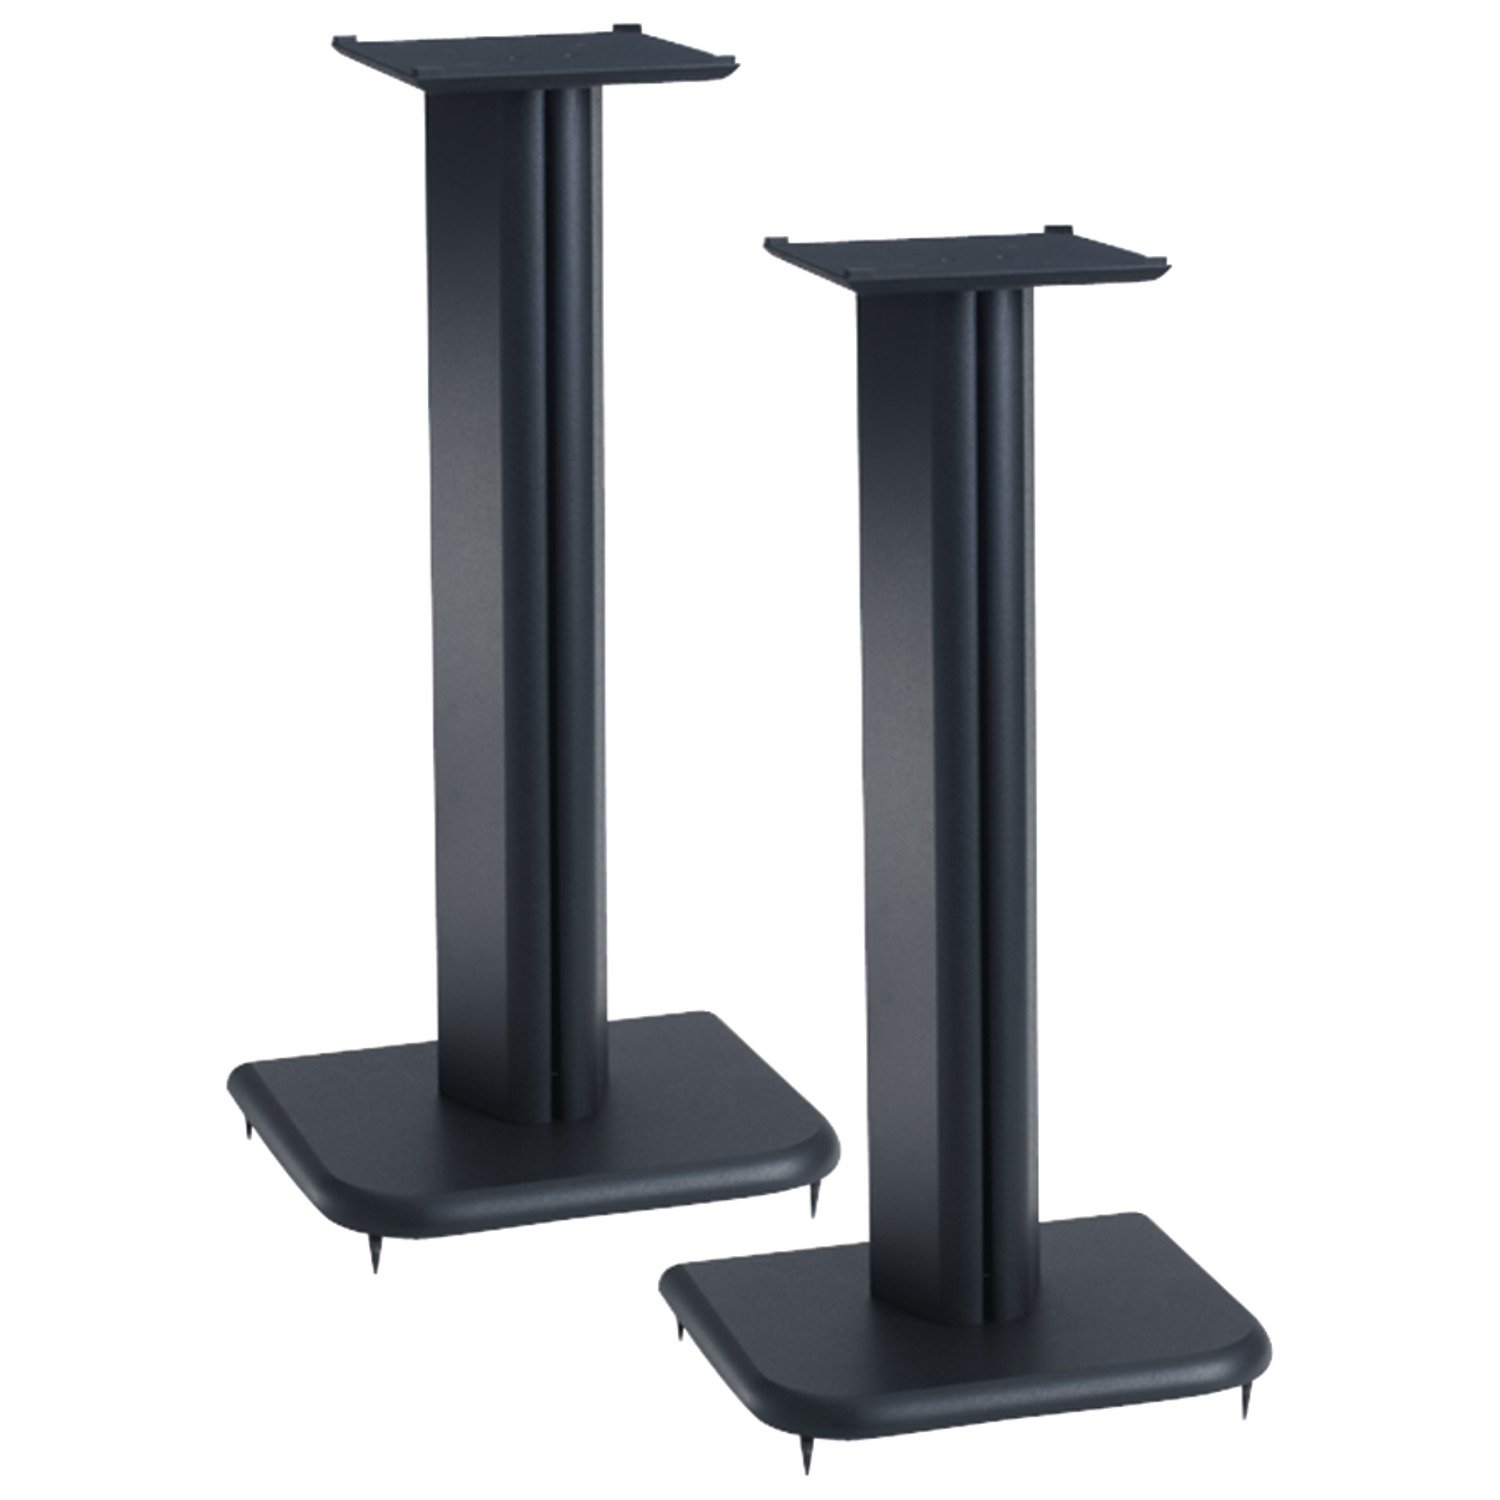 Sanus BF24B 24 Inch Speaker Stands (Pair) by Sanus